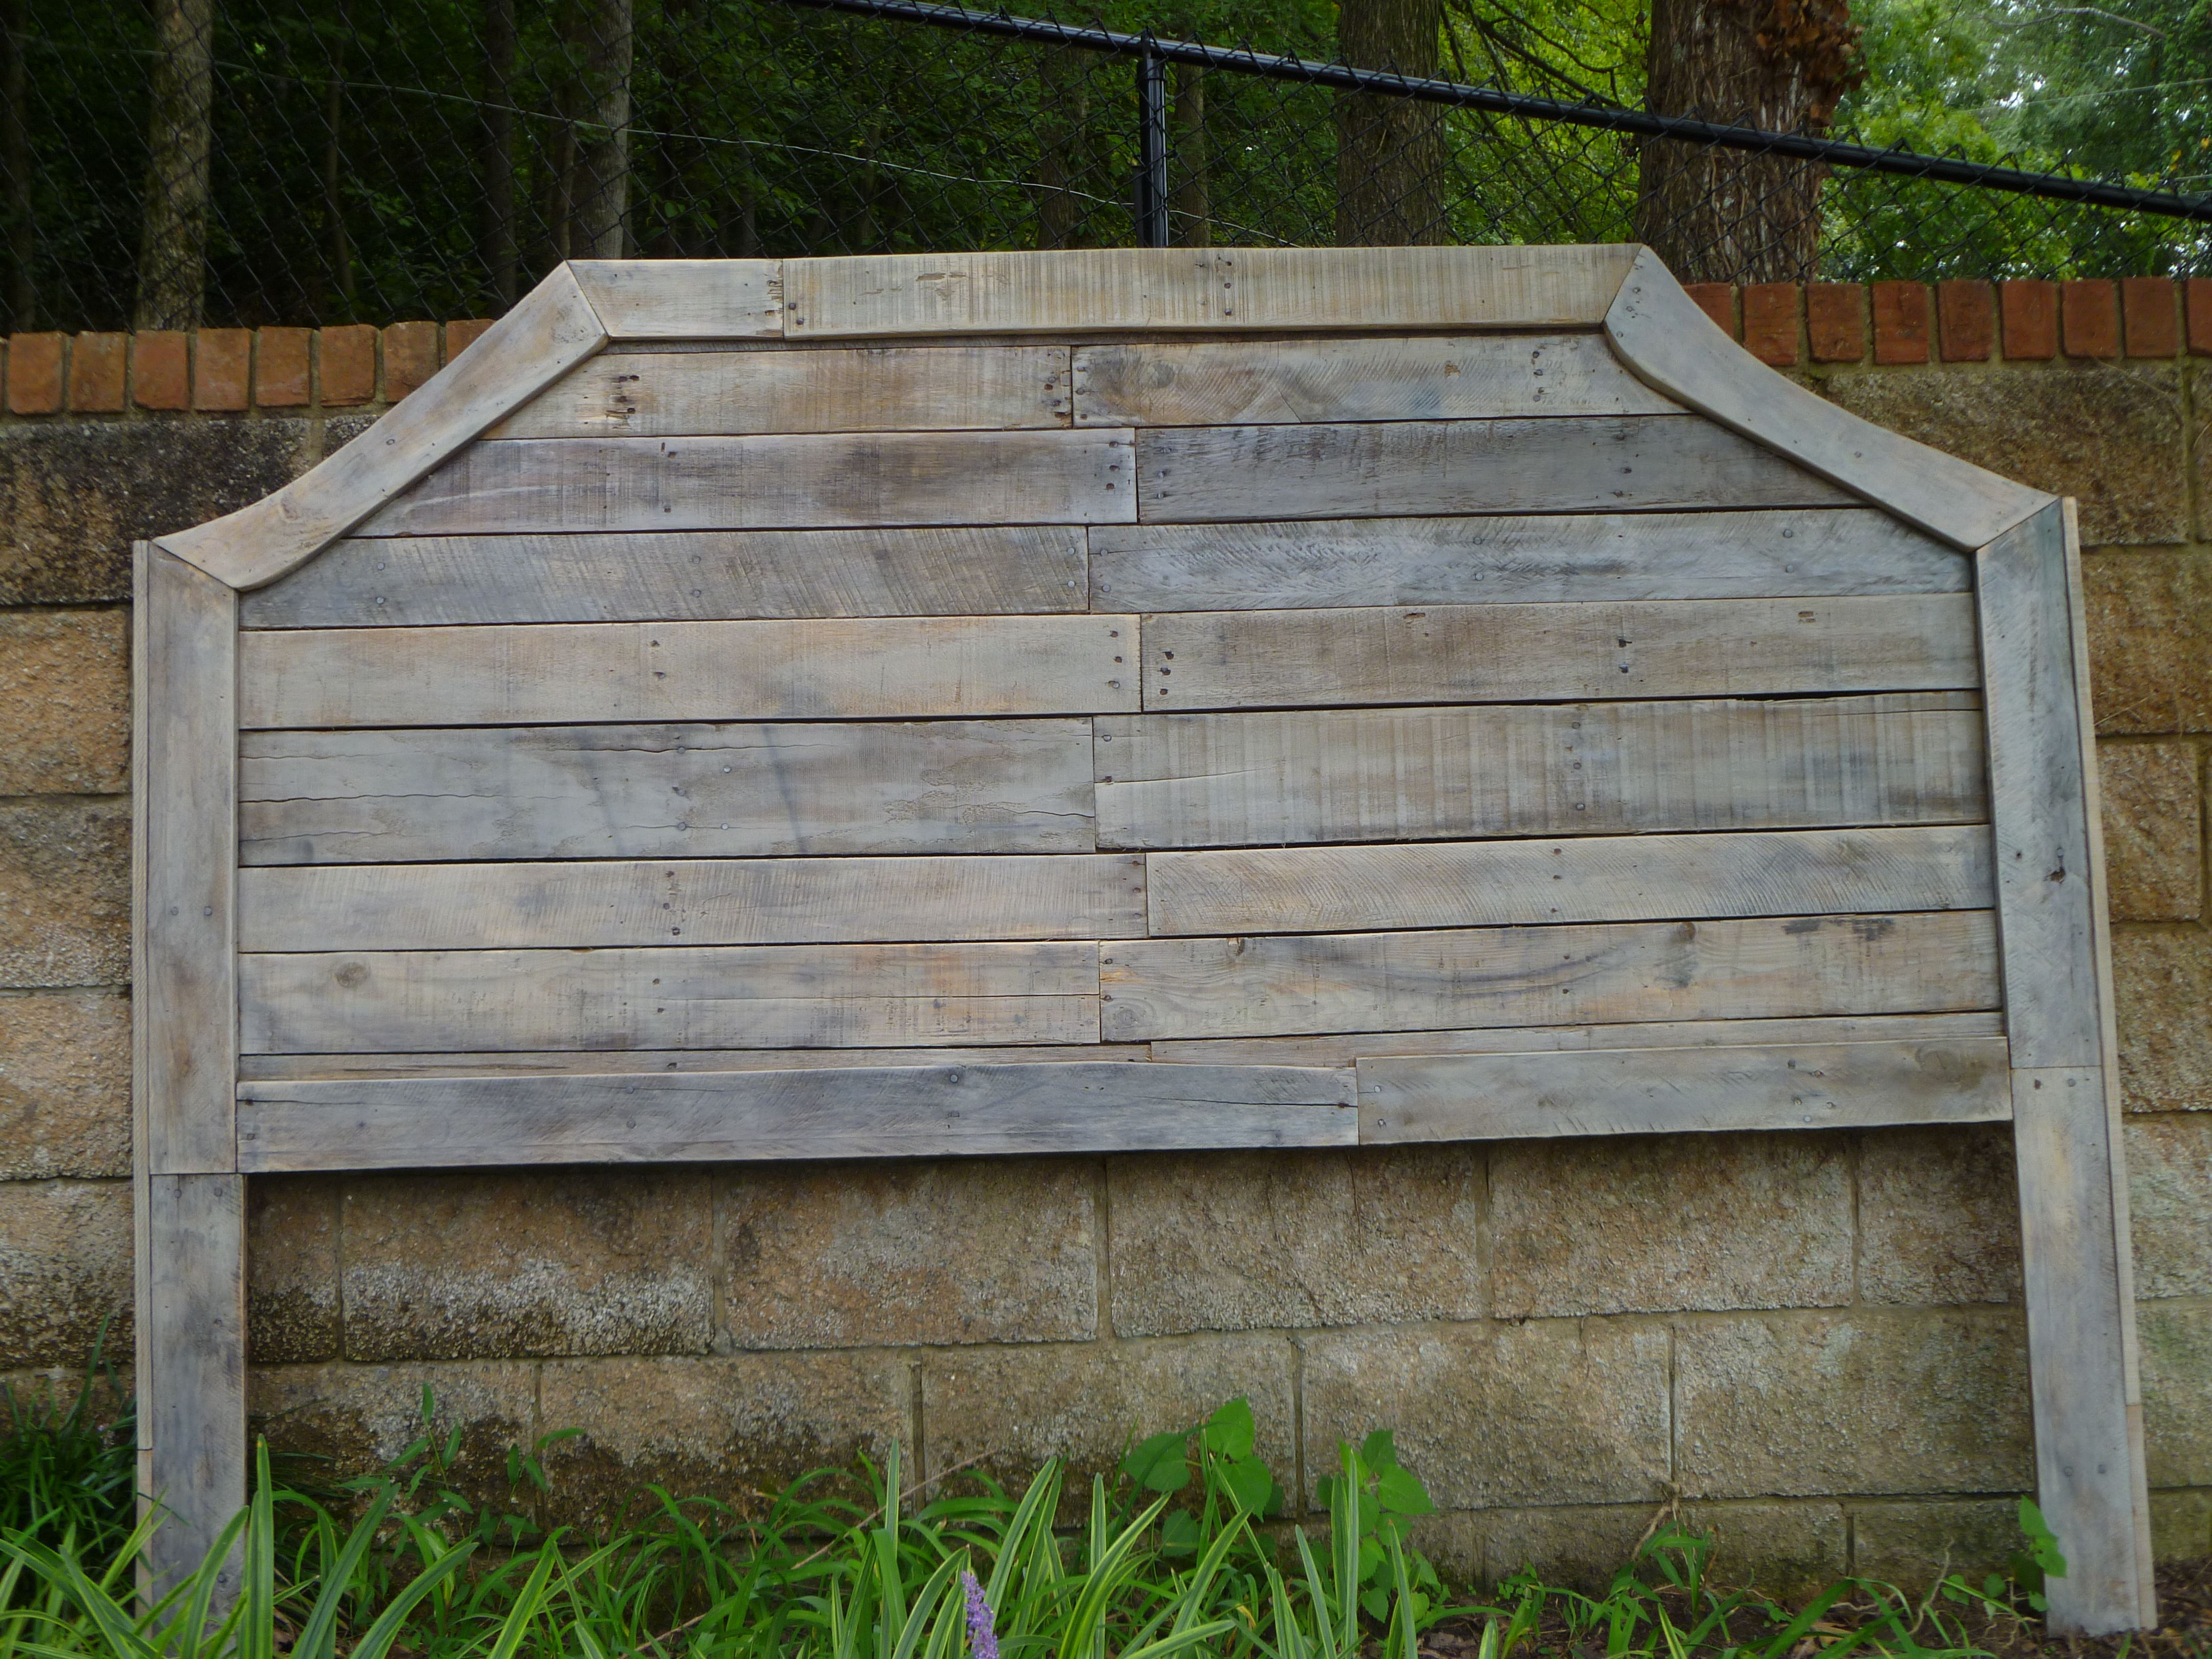 Pallet Headboards With Gray Wash Stain Projects Pinterest Grey Wash Pallets And Gray